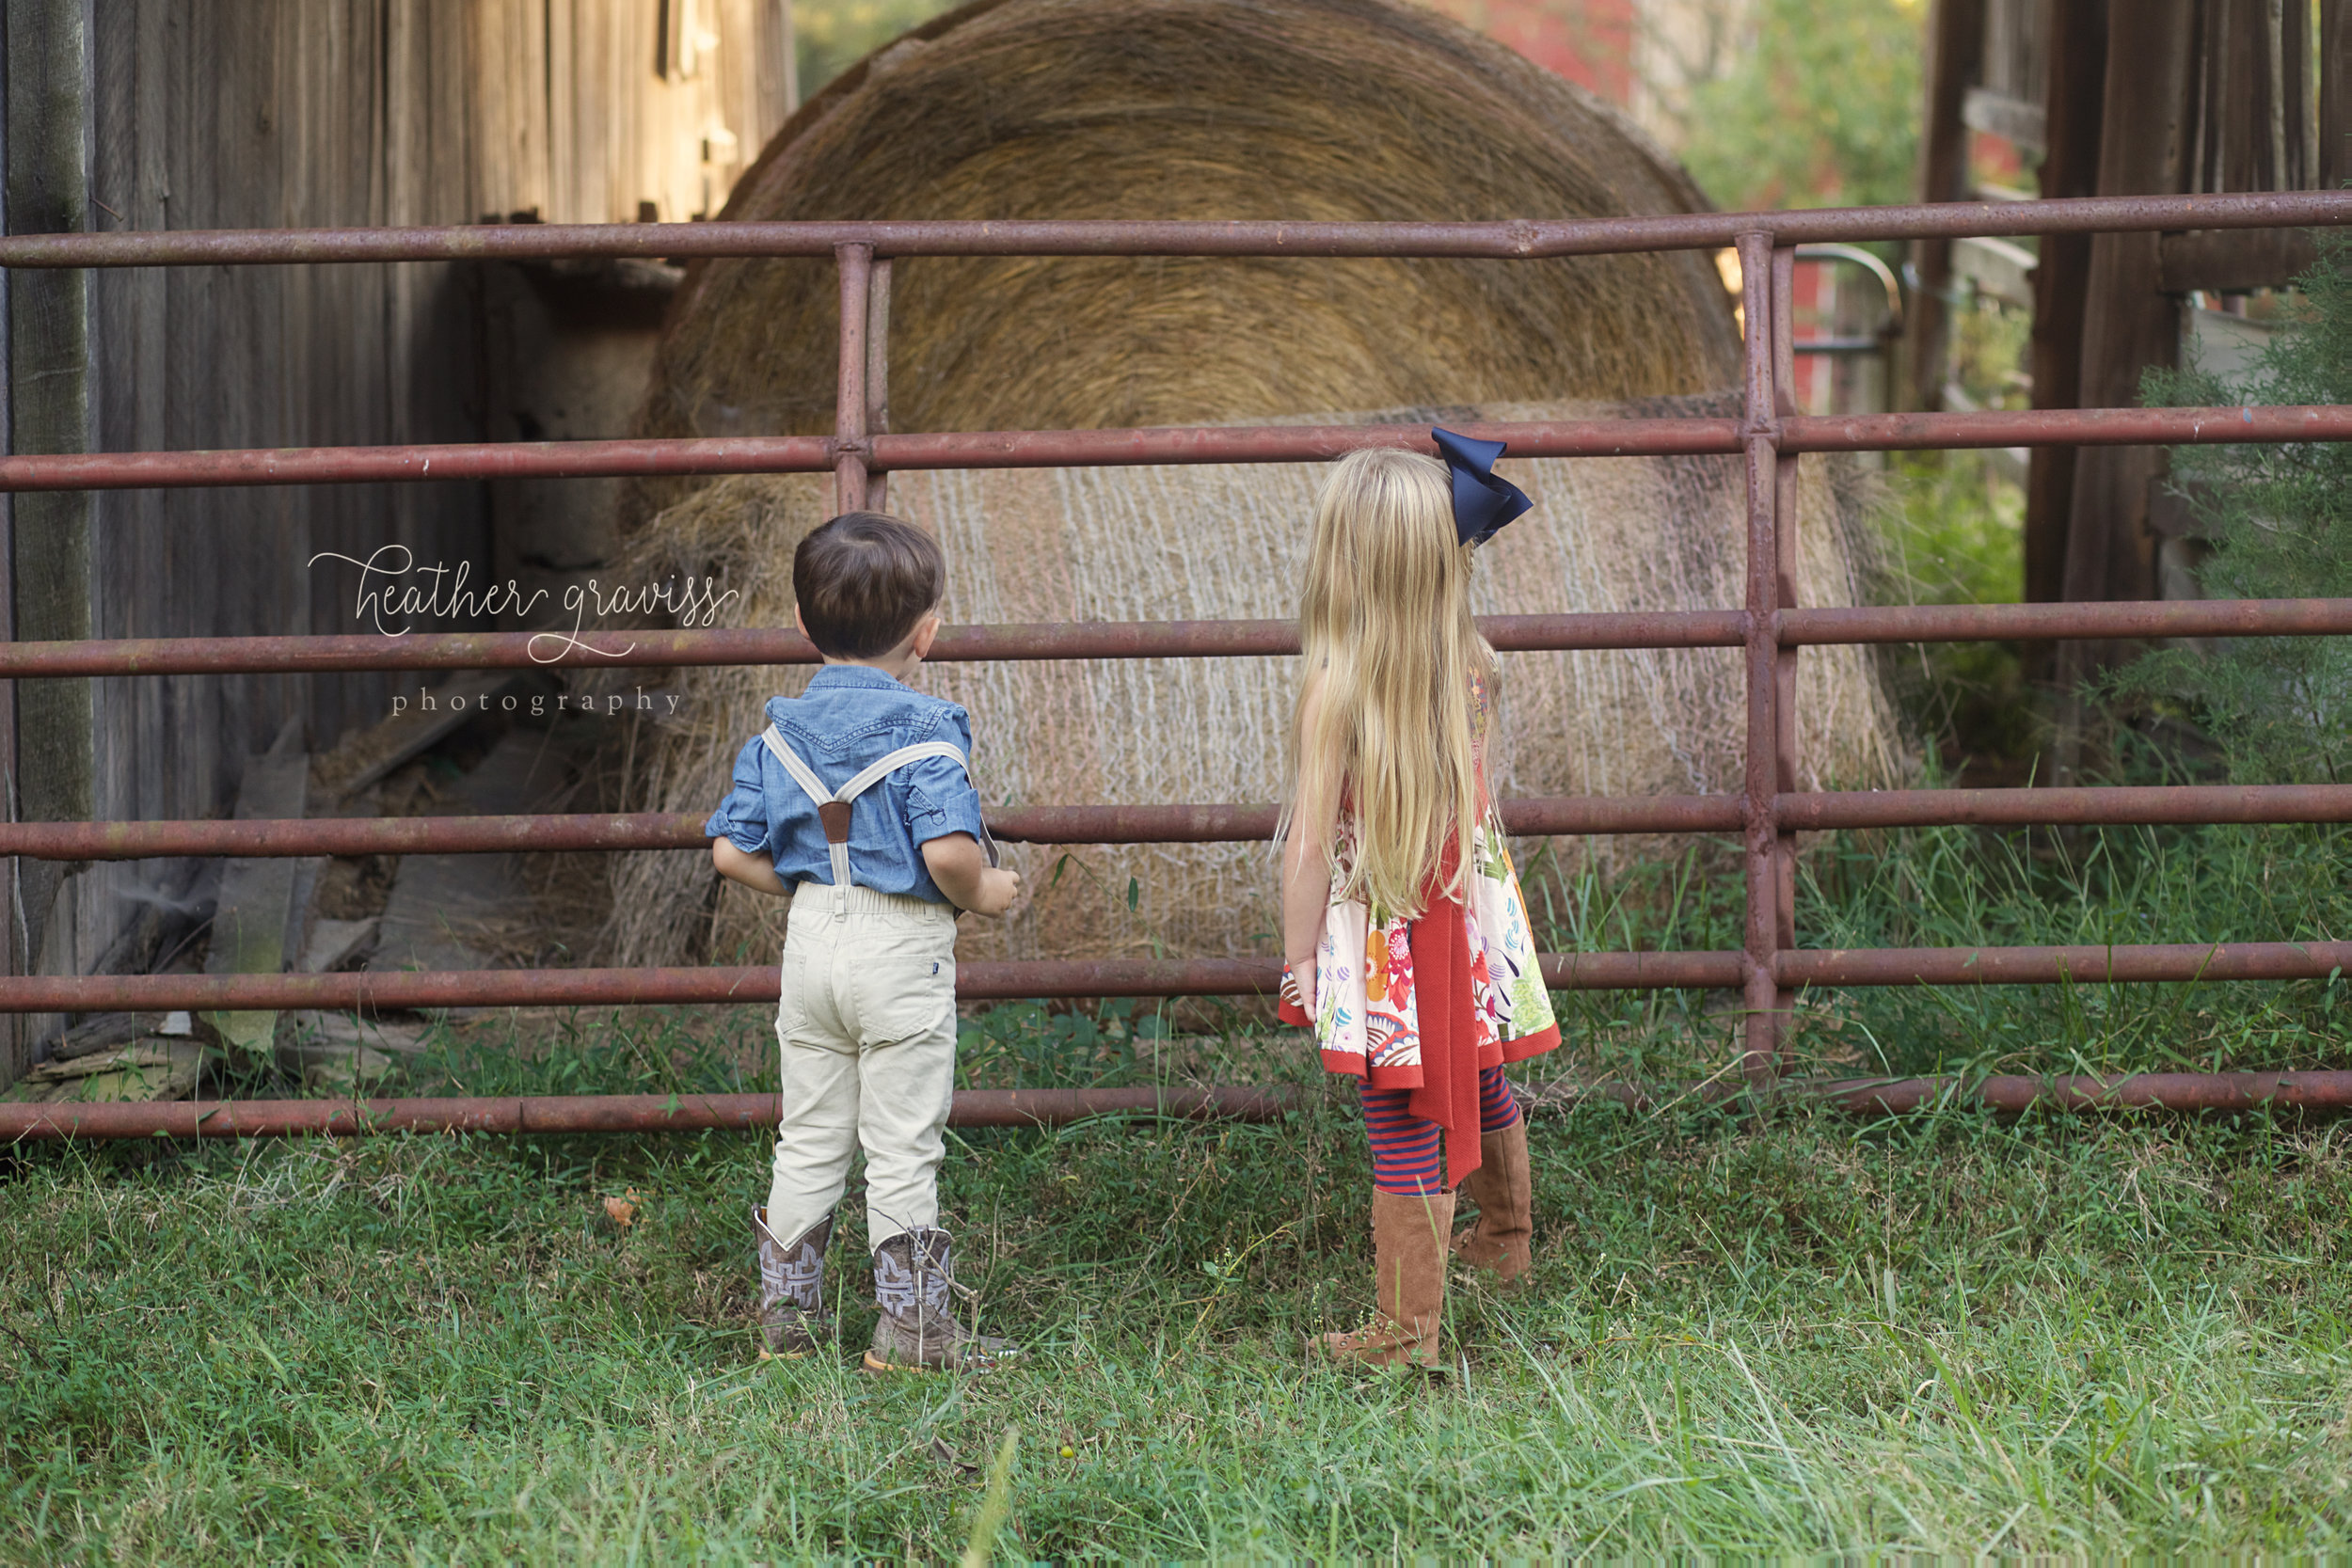 nashville middle tn family photographer 266.jpg